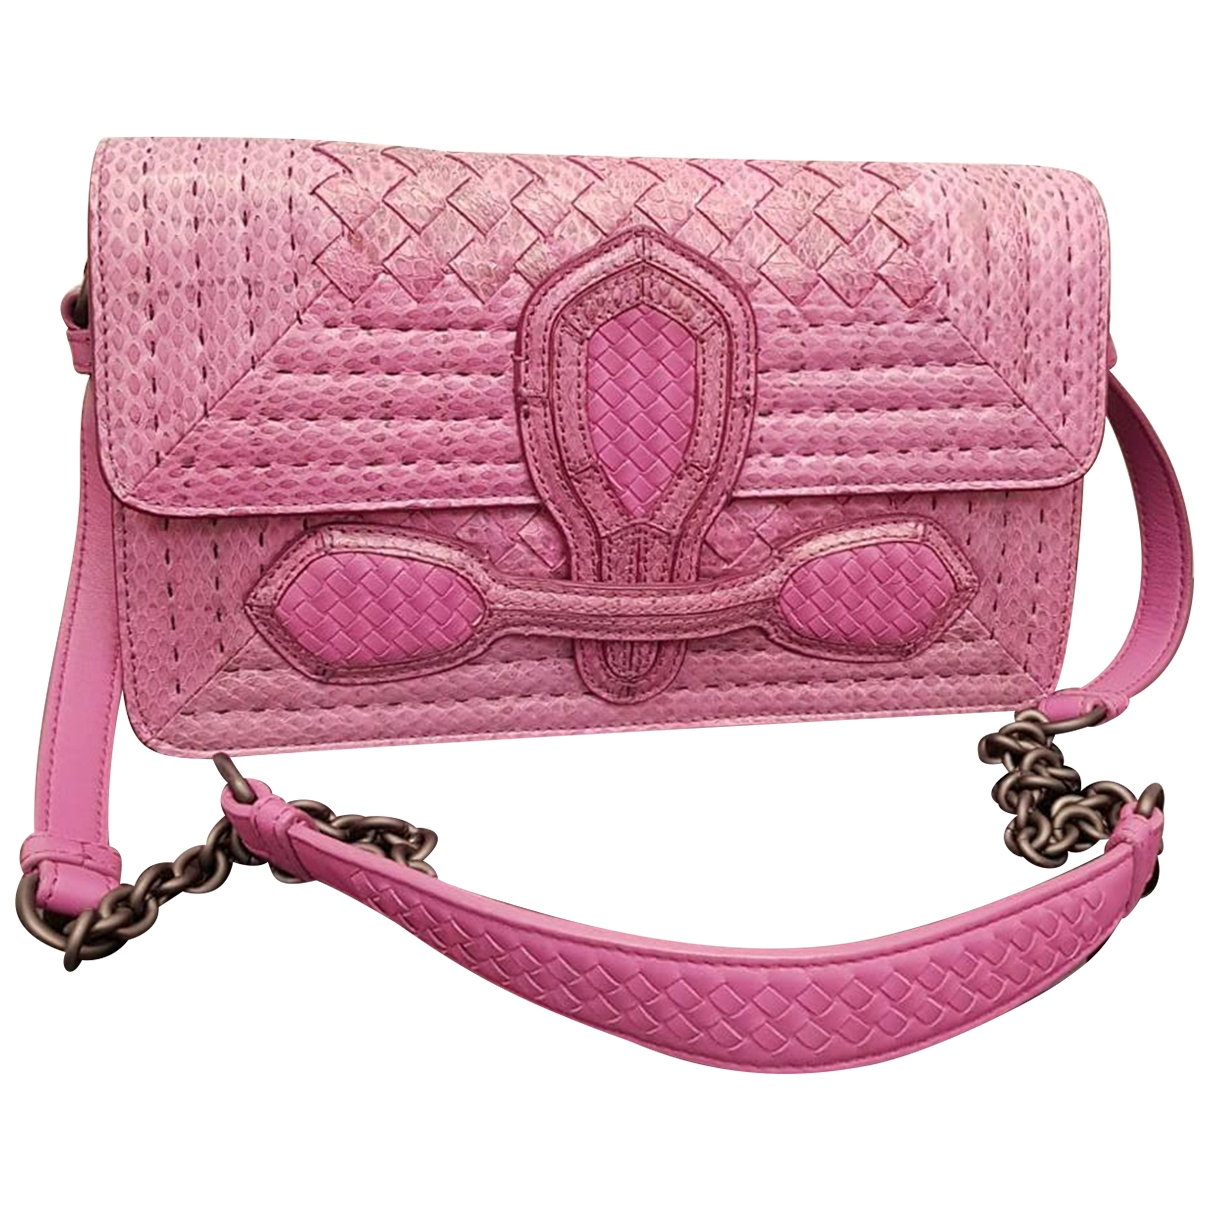 Bottega Veneta \N Purple Python handbag for Women \N